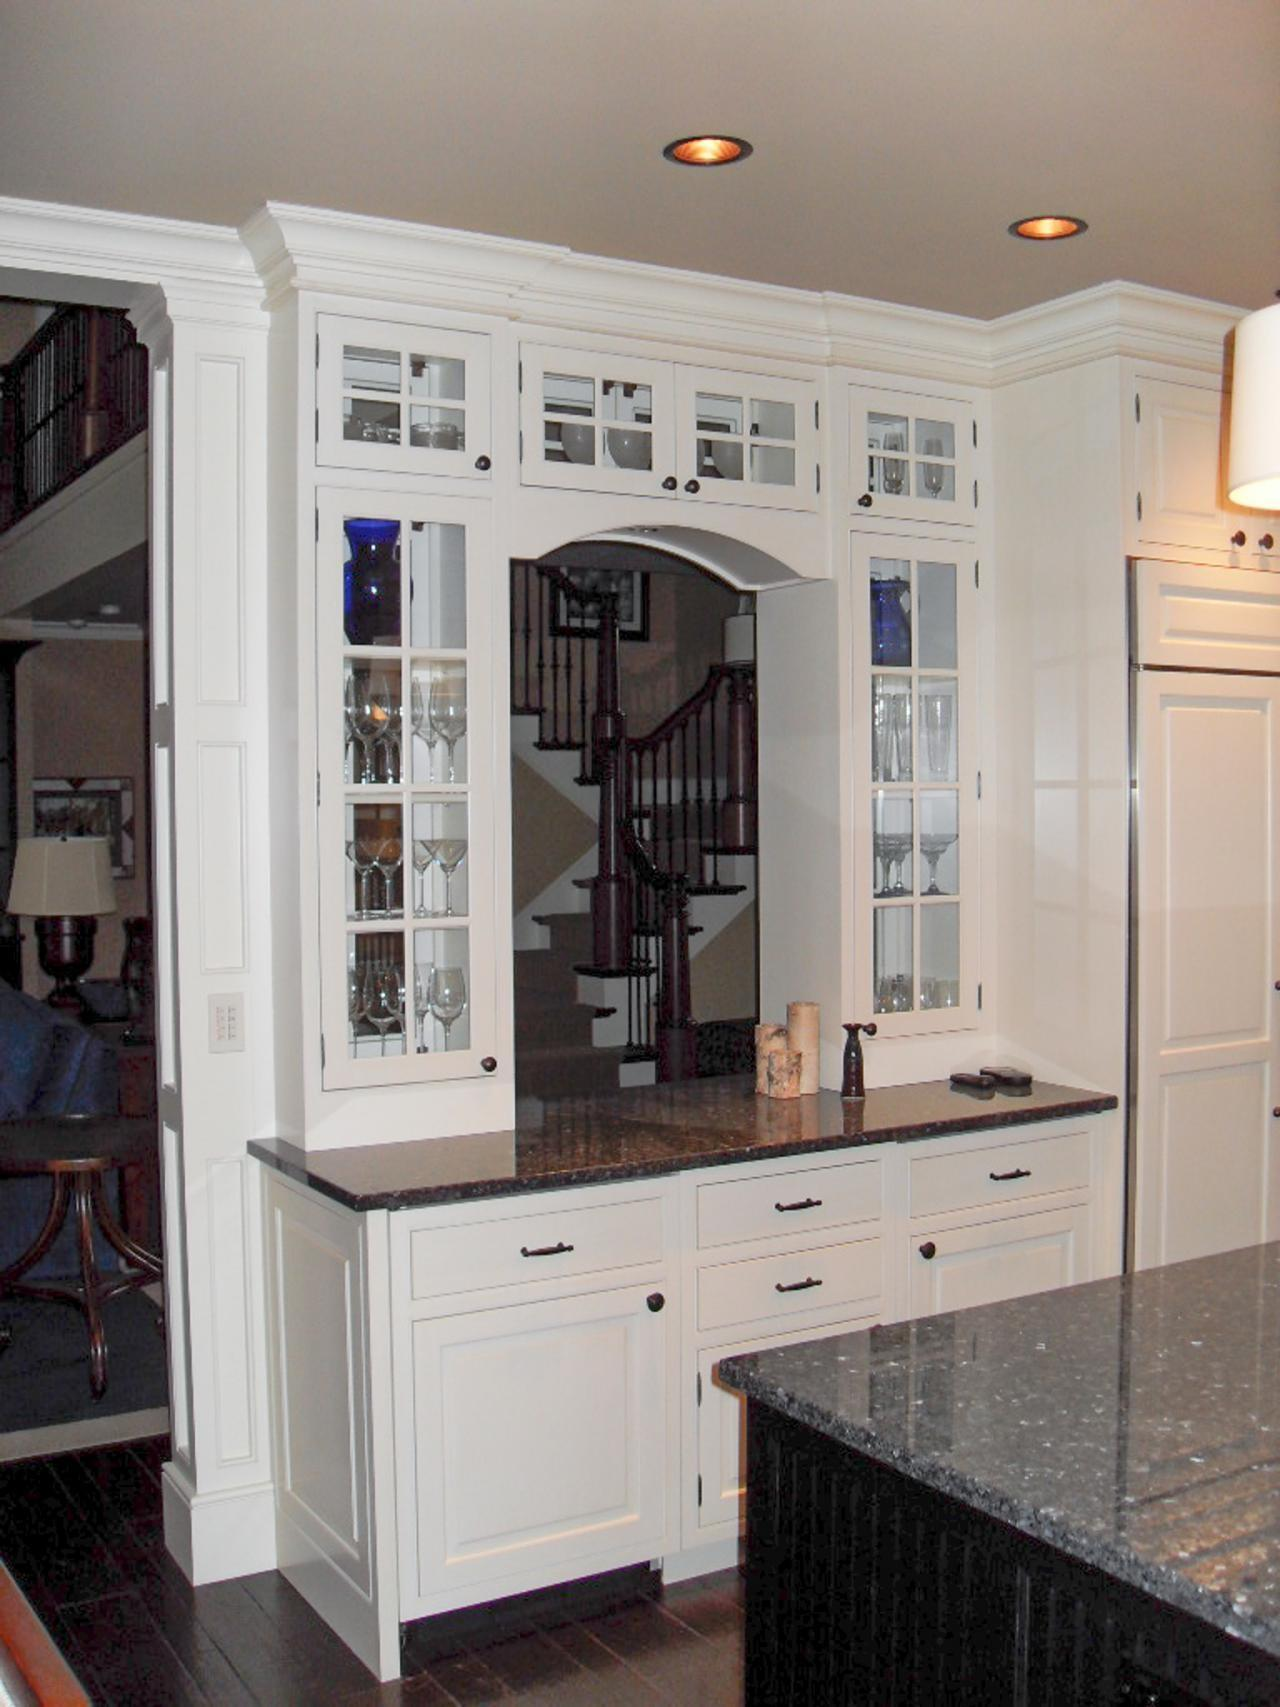 Kitchen Pass Through Window Ideas Home Intuitive